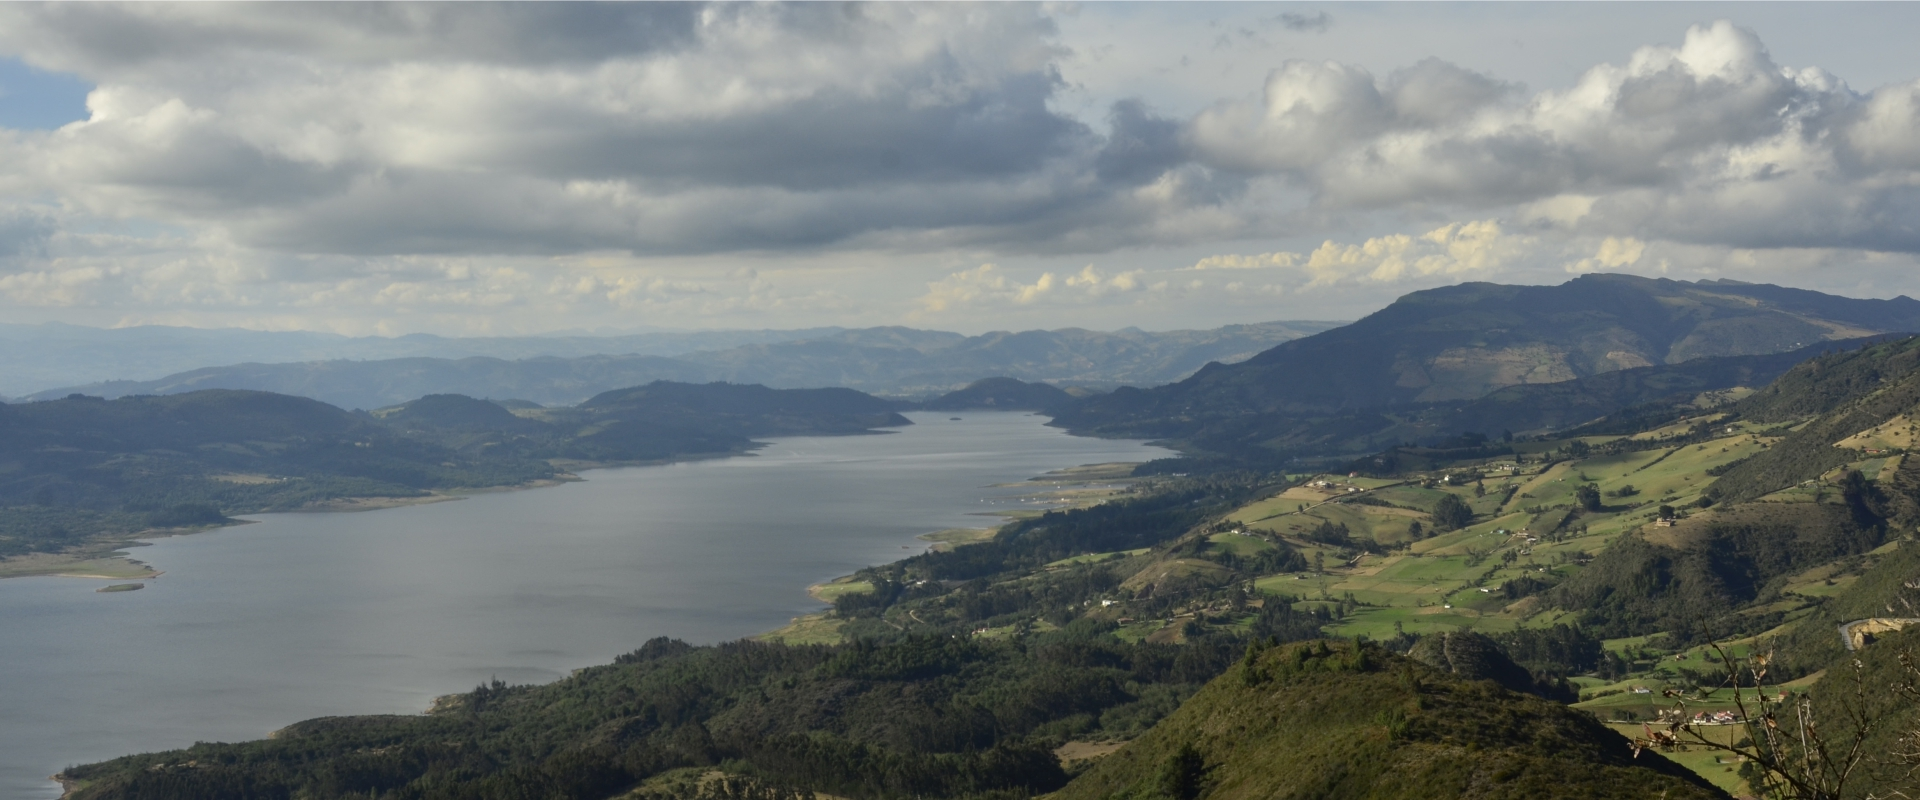 Cycling trip Guatavita Andes Colombia - Superior